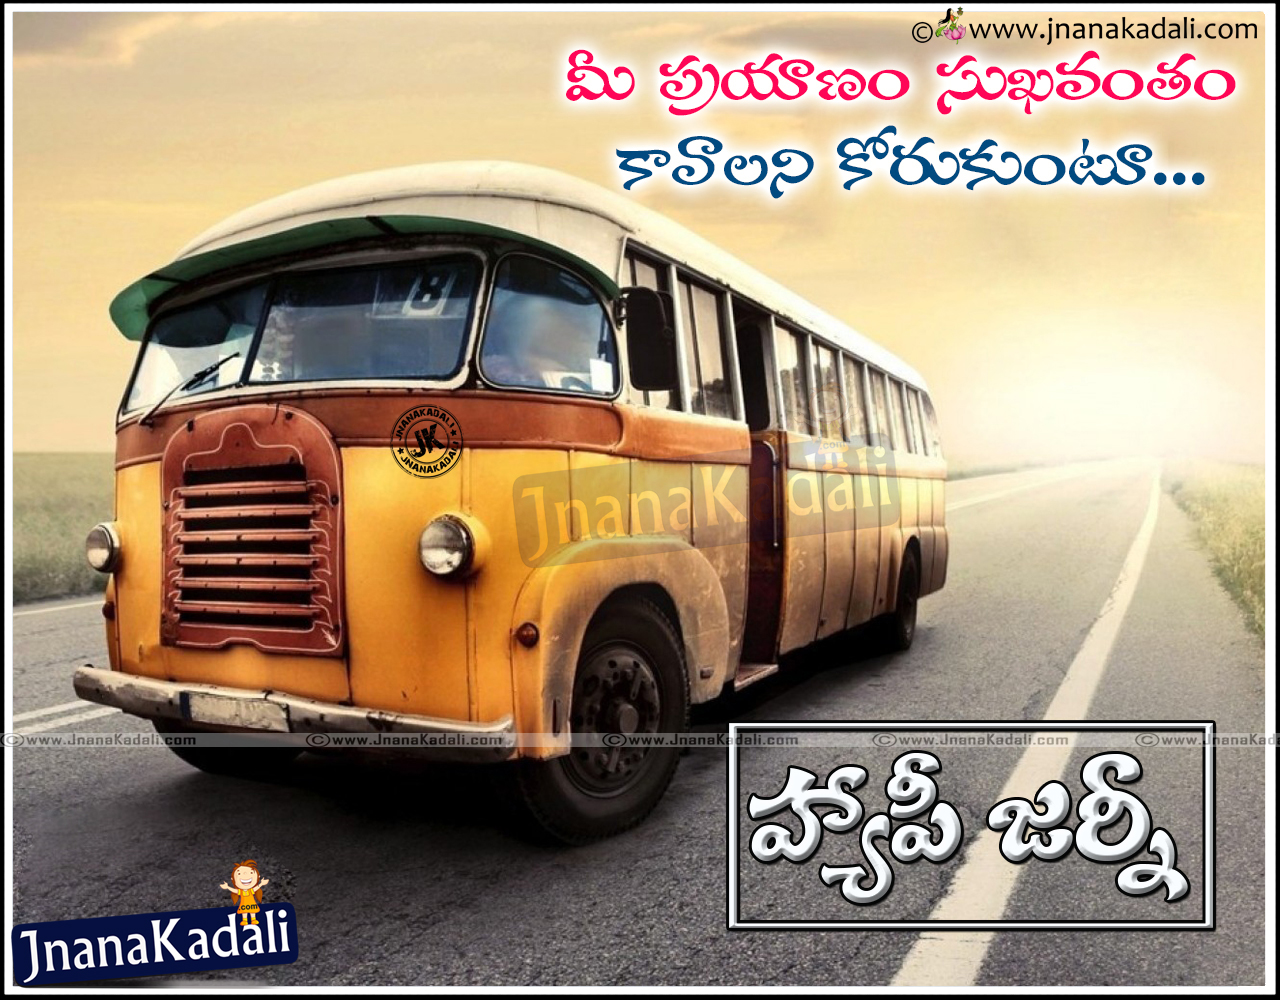 Happy journey telugu quotes greetings wishes sms jnana kadali here is a telugu best happy journey quotes and greetings online happy journey messages in telugu telugu family happy journey wallpapers beautiful journey m4hsunfo